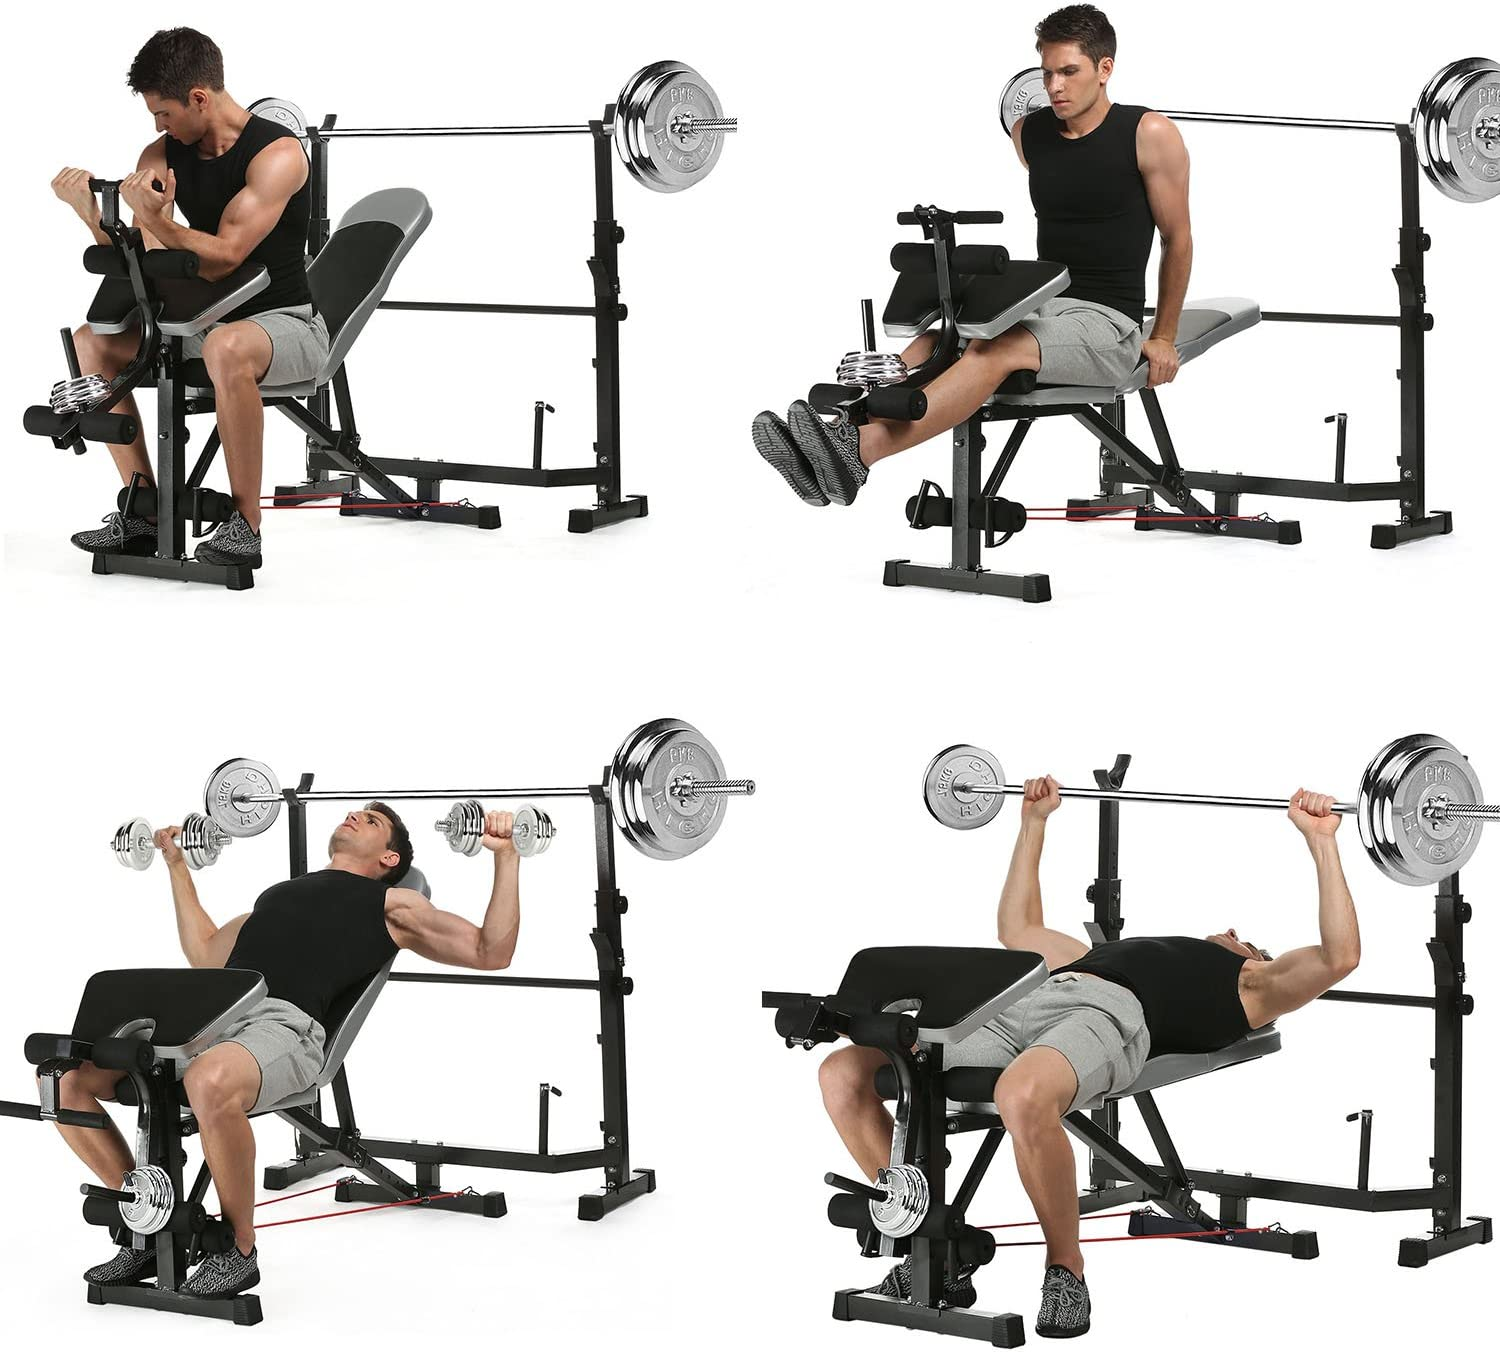 Leg Developer for Indoor Exercise Multi-Function Adjustable Weight Bench with Preacher Curl Olympic Weight Bench